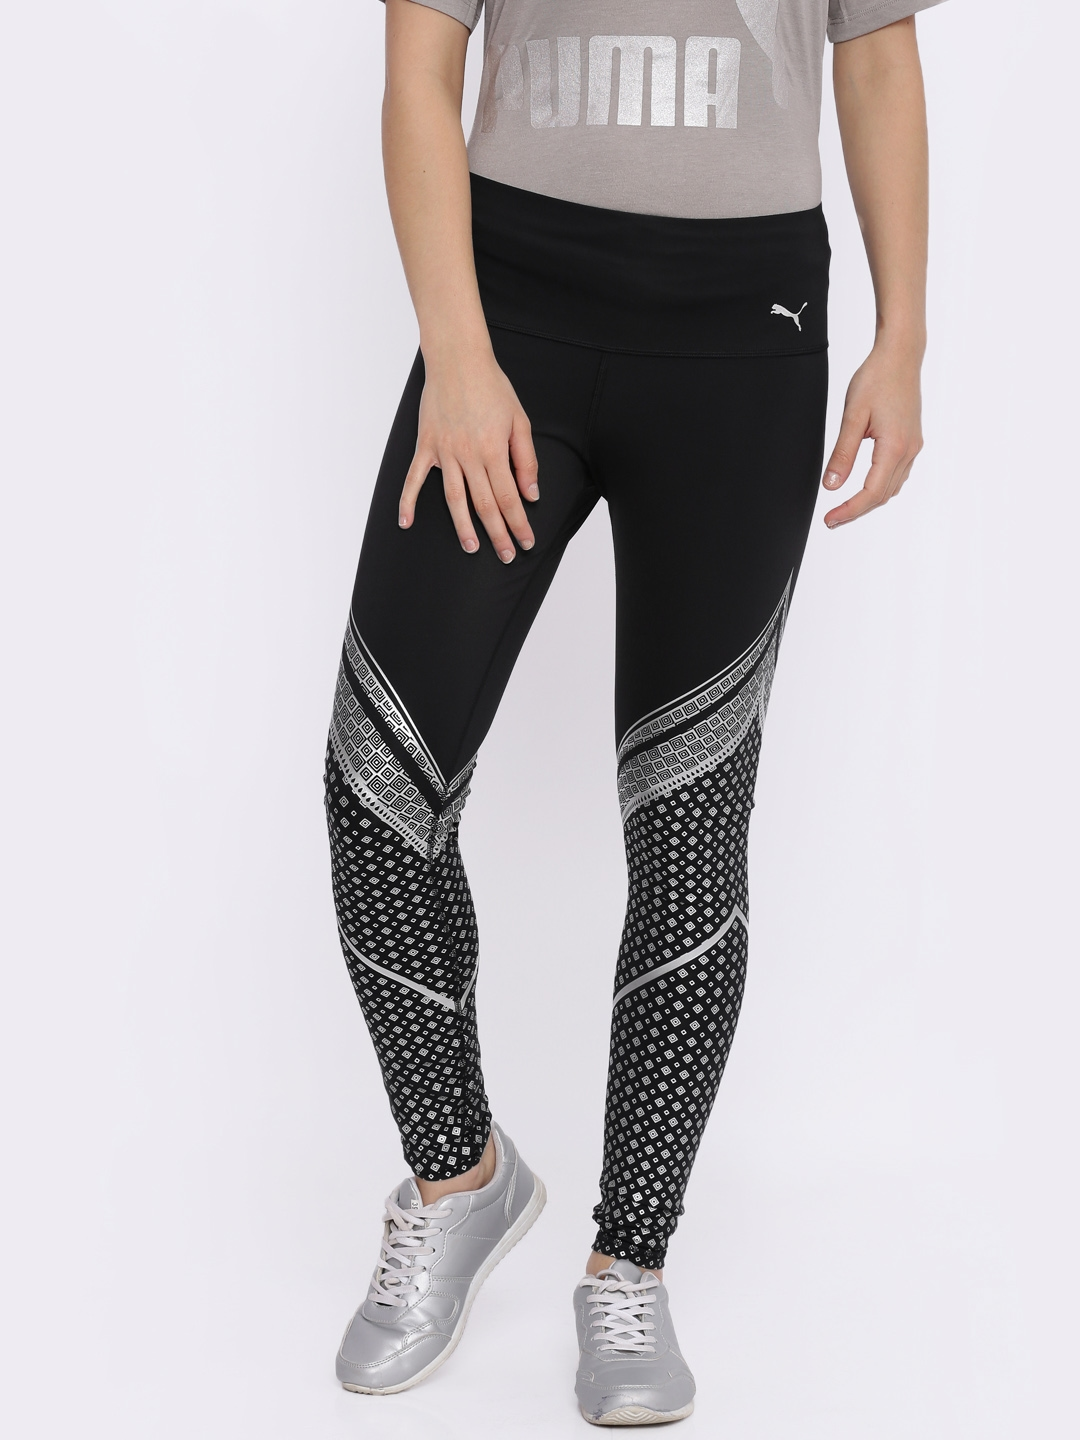 668ac690a34307 Buy Puma Black Printed Everyday Train Graphic Tights - Tights for ...